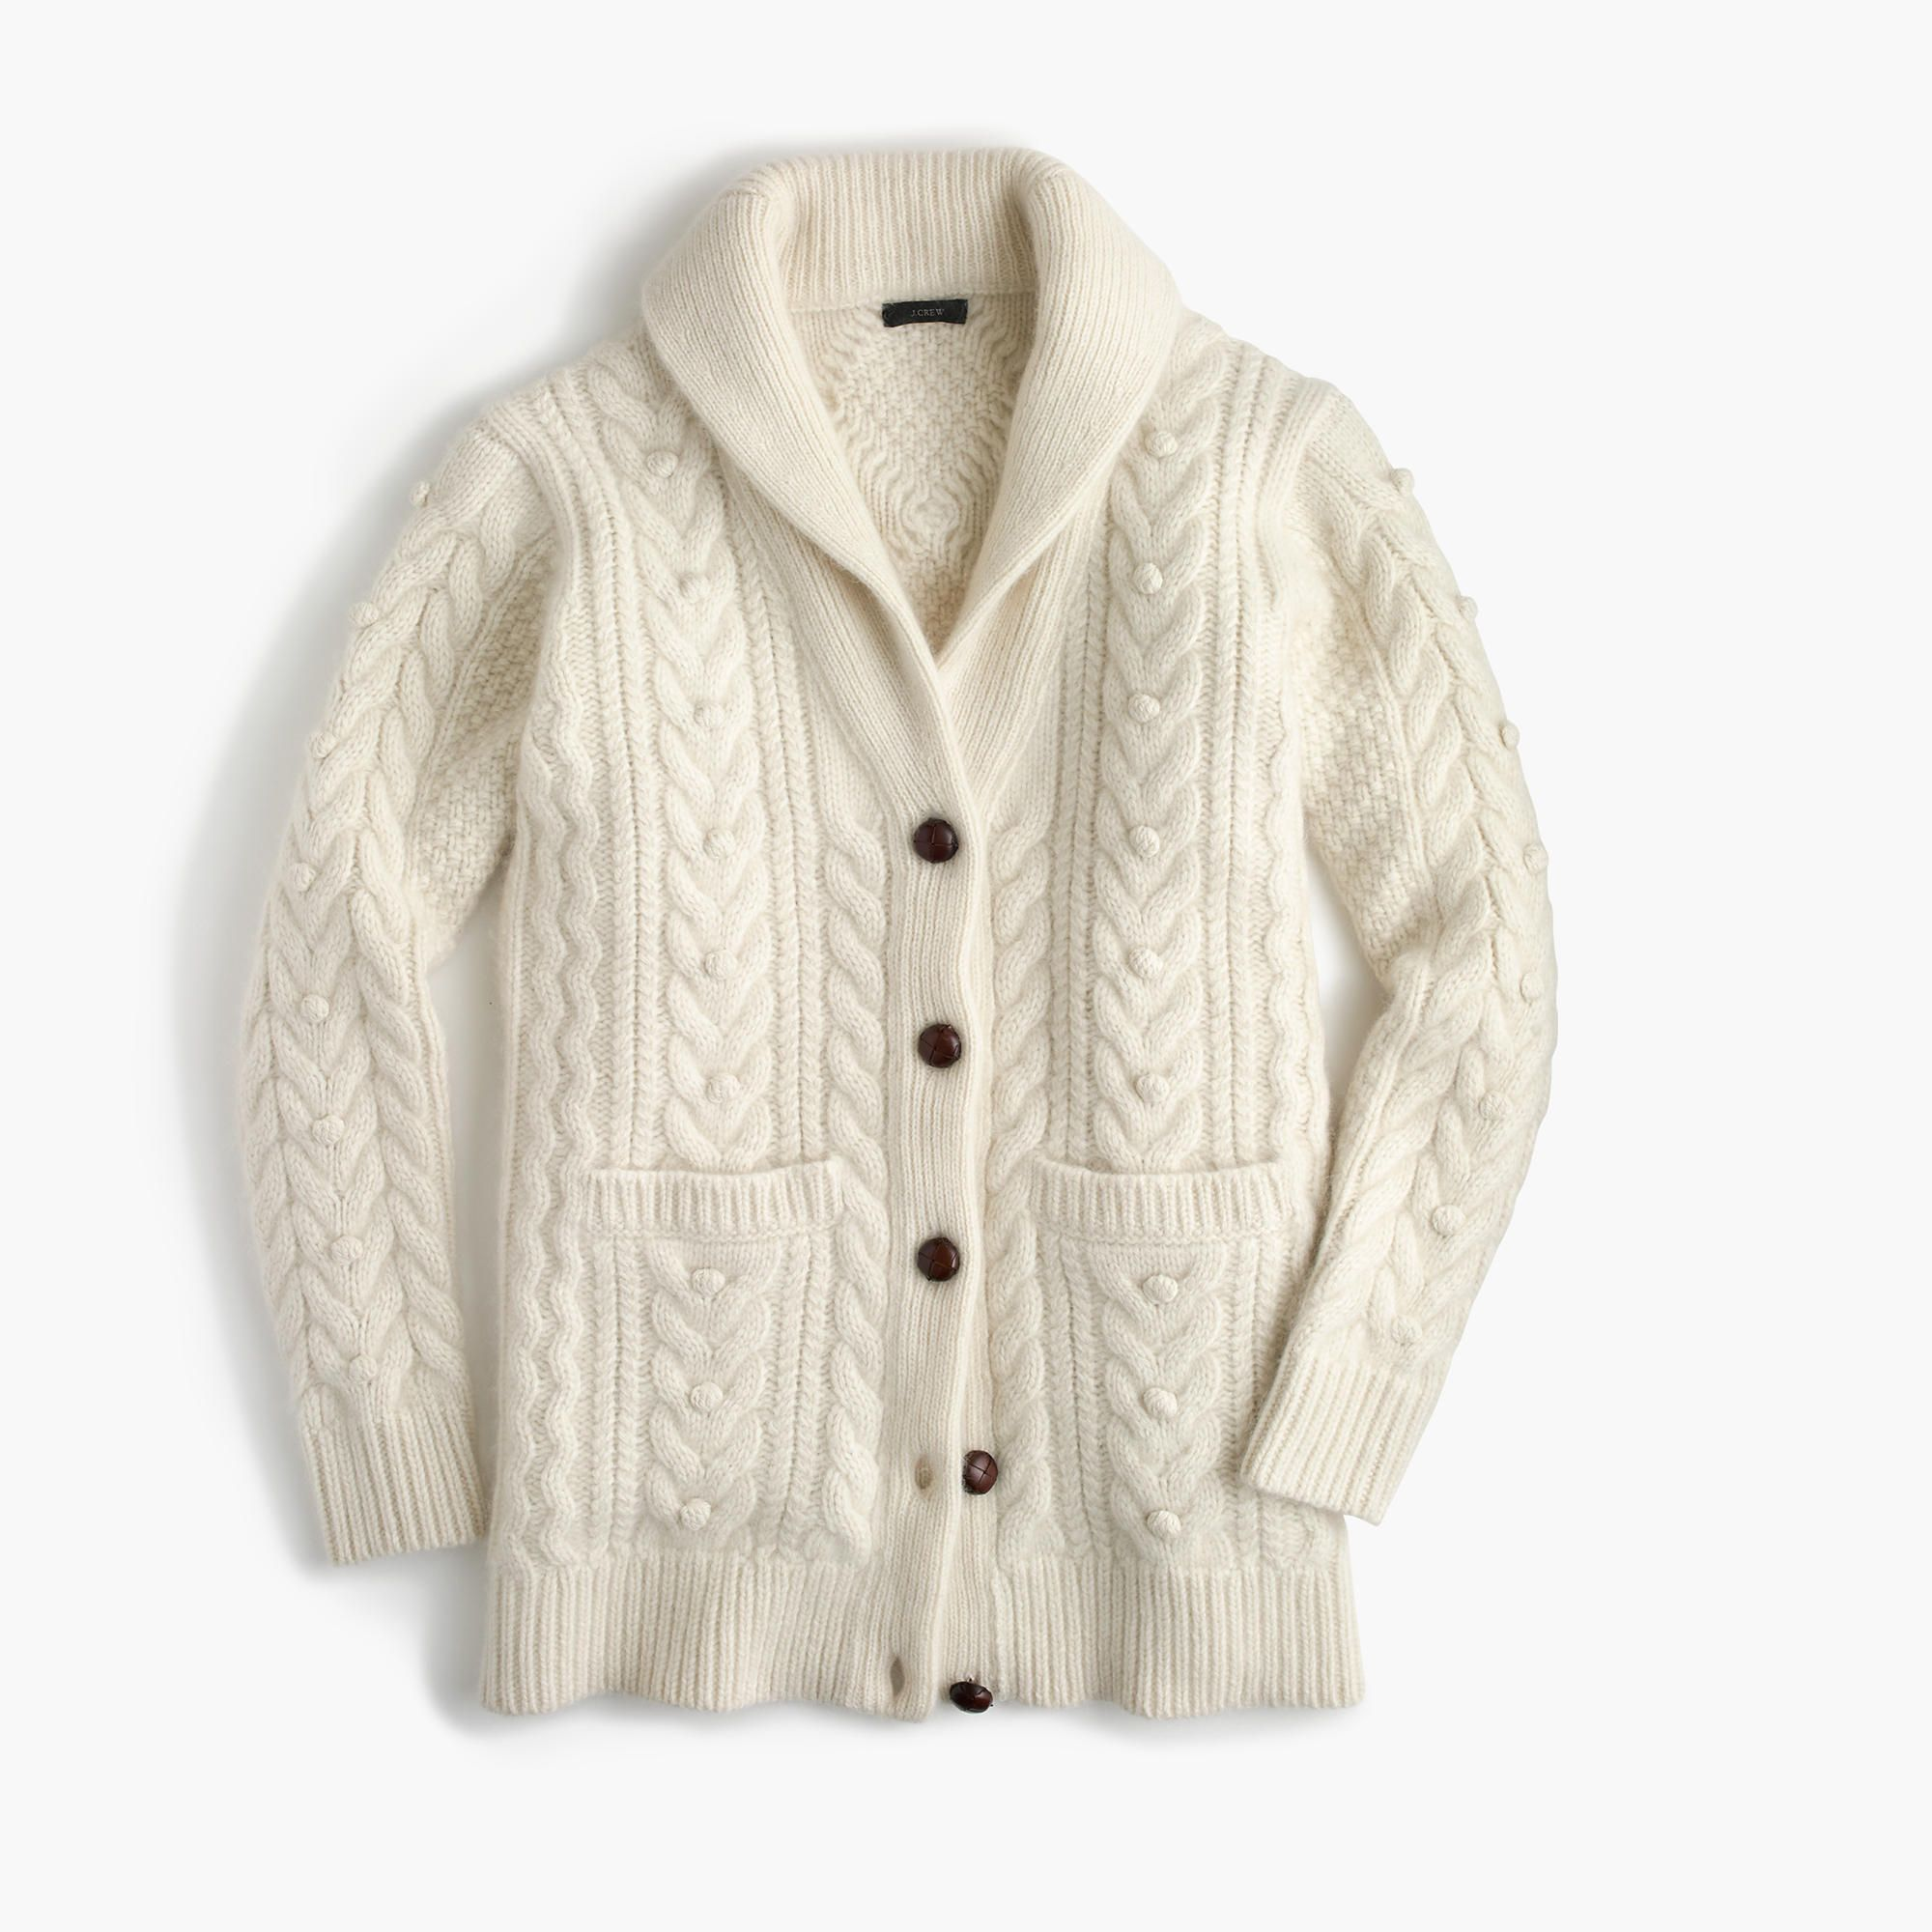 J. Crew Warm Ivory Cashmere-Mohair Blend Cable Cardigan Sweater ...